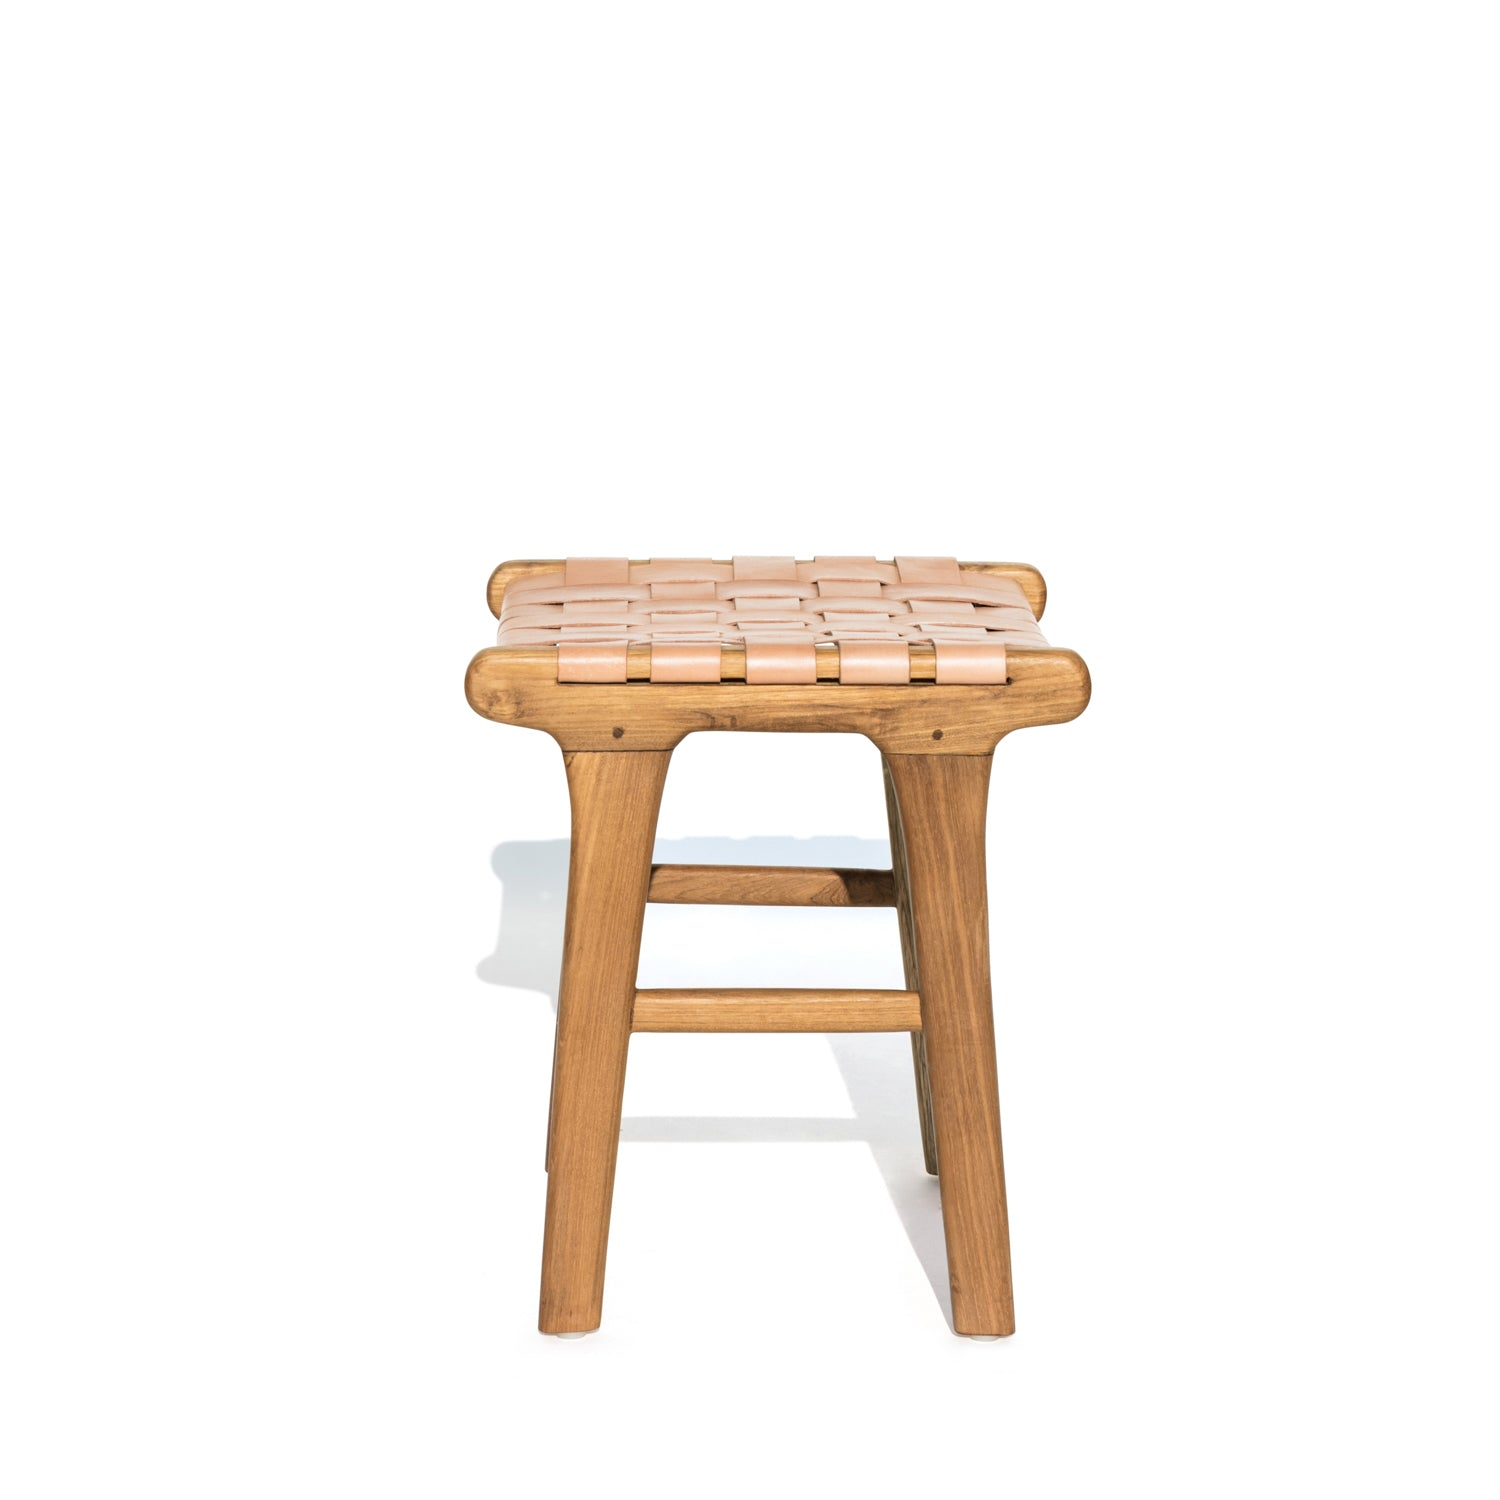 stool #1 in natural